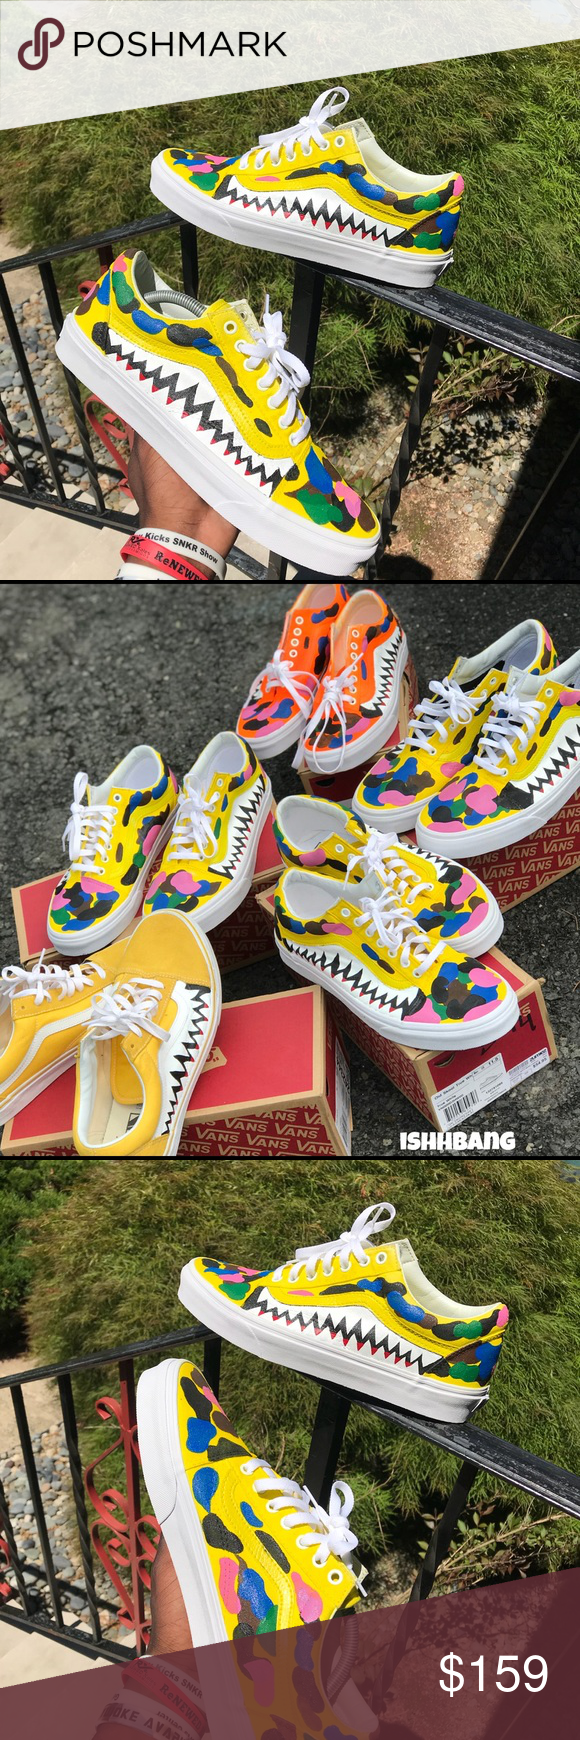 2e73d4eb5295 Multi-Colored Bape Vans Customized Yellow Size 13 - You are viewing my  customized pair of Bape Vans in a size 13. I have a size 13 ready to be  made.